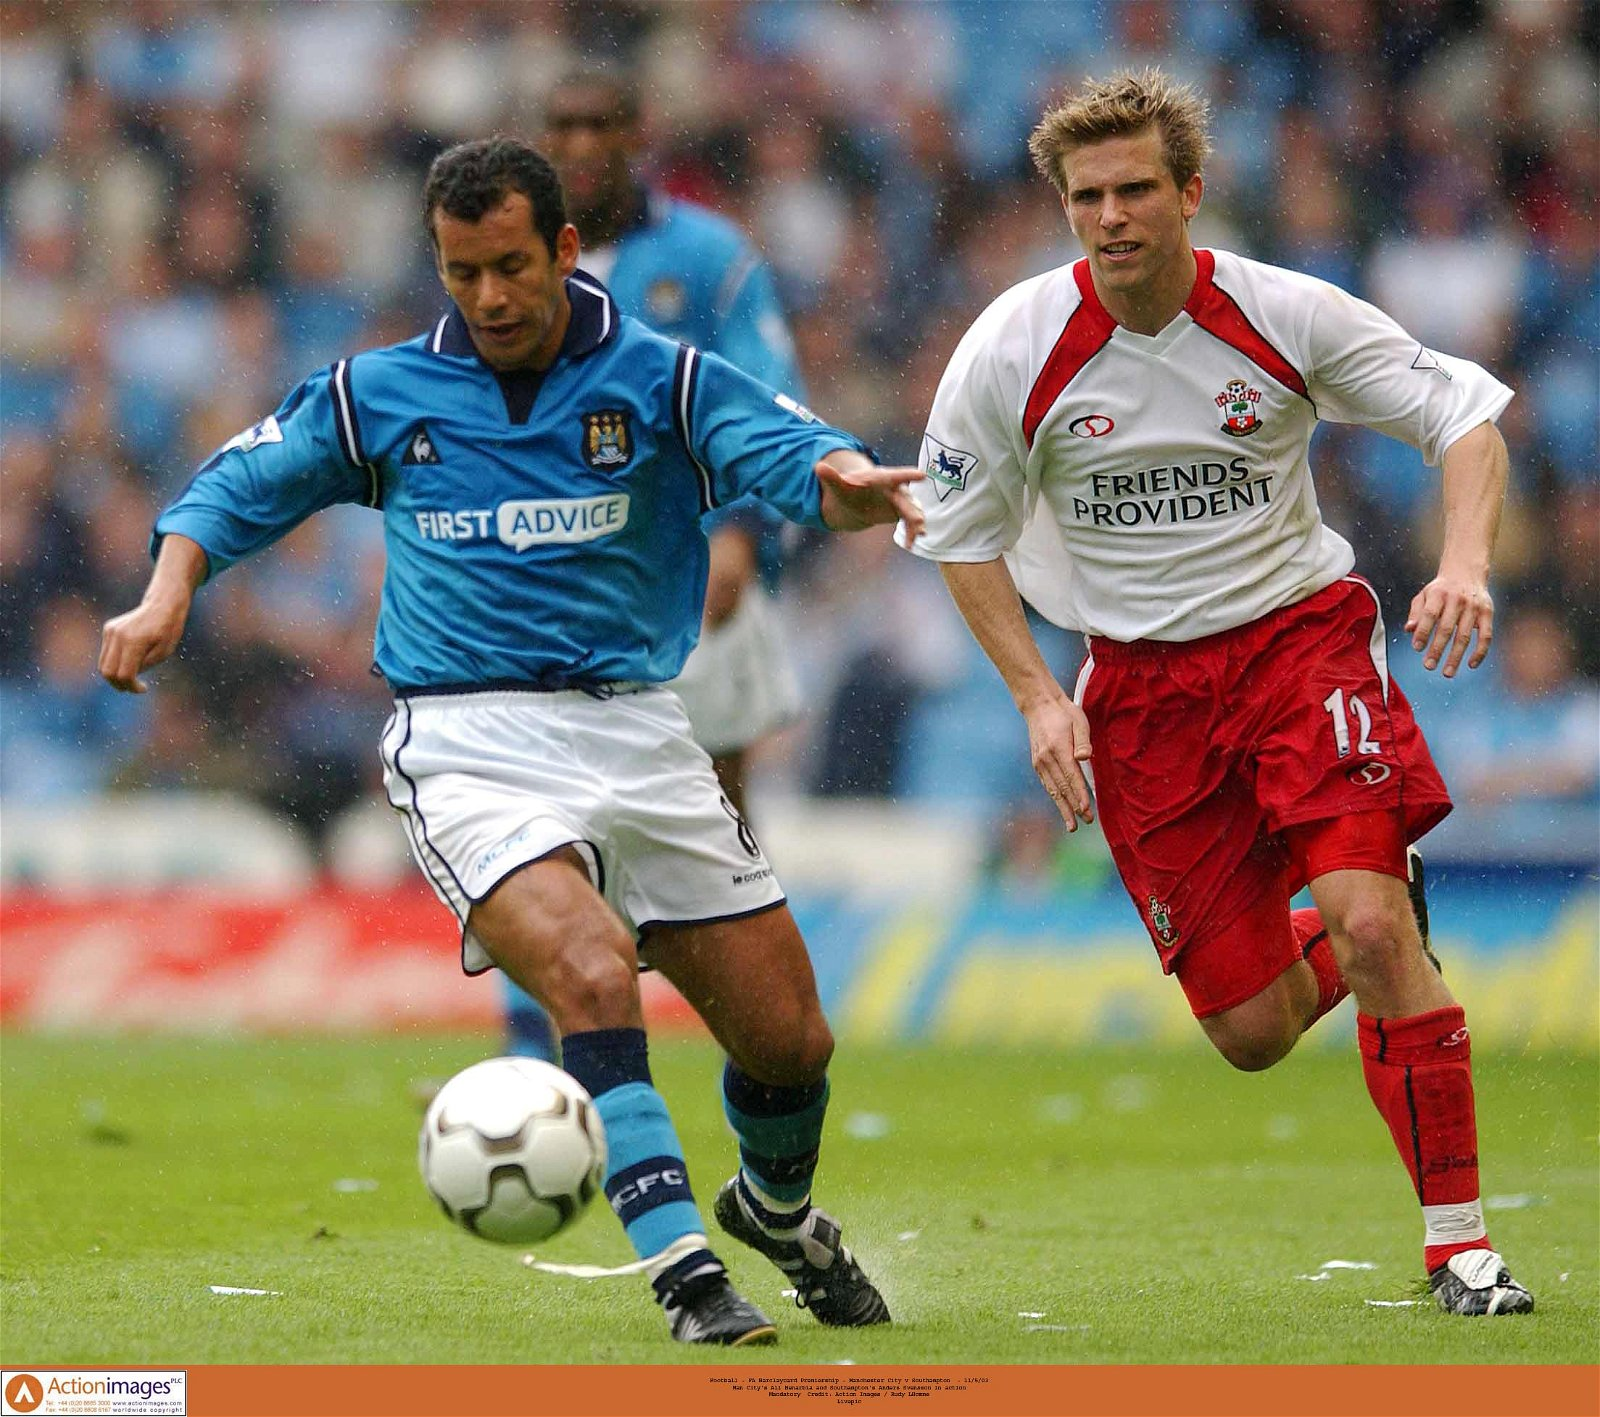 Man City's Ali Benarbia and Southampton's Anders Svensson in action